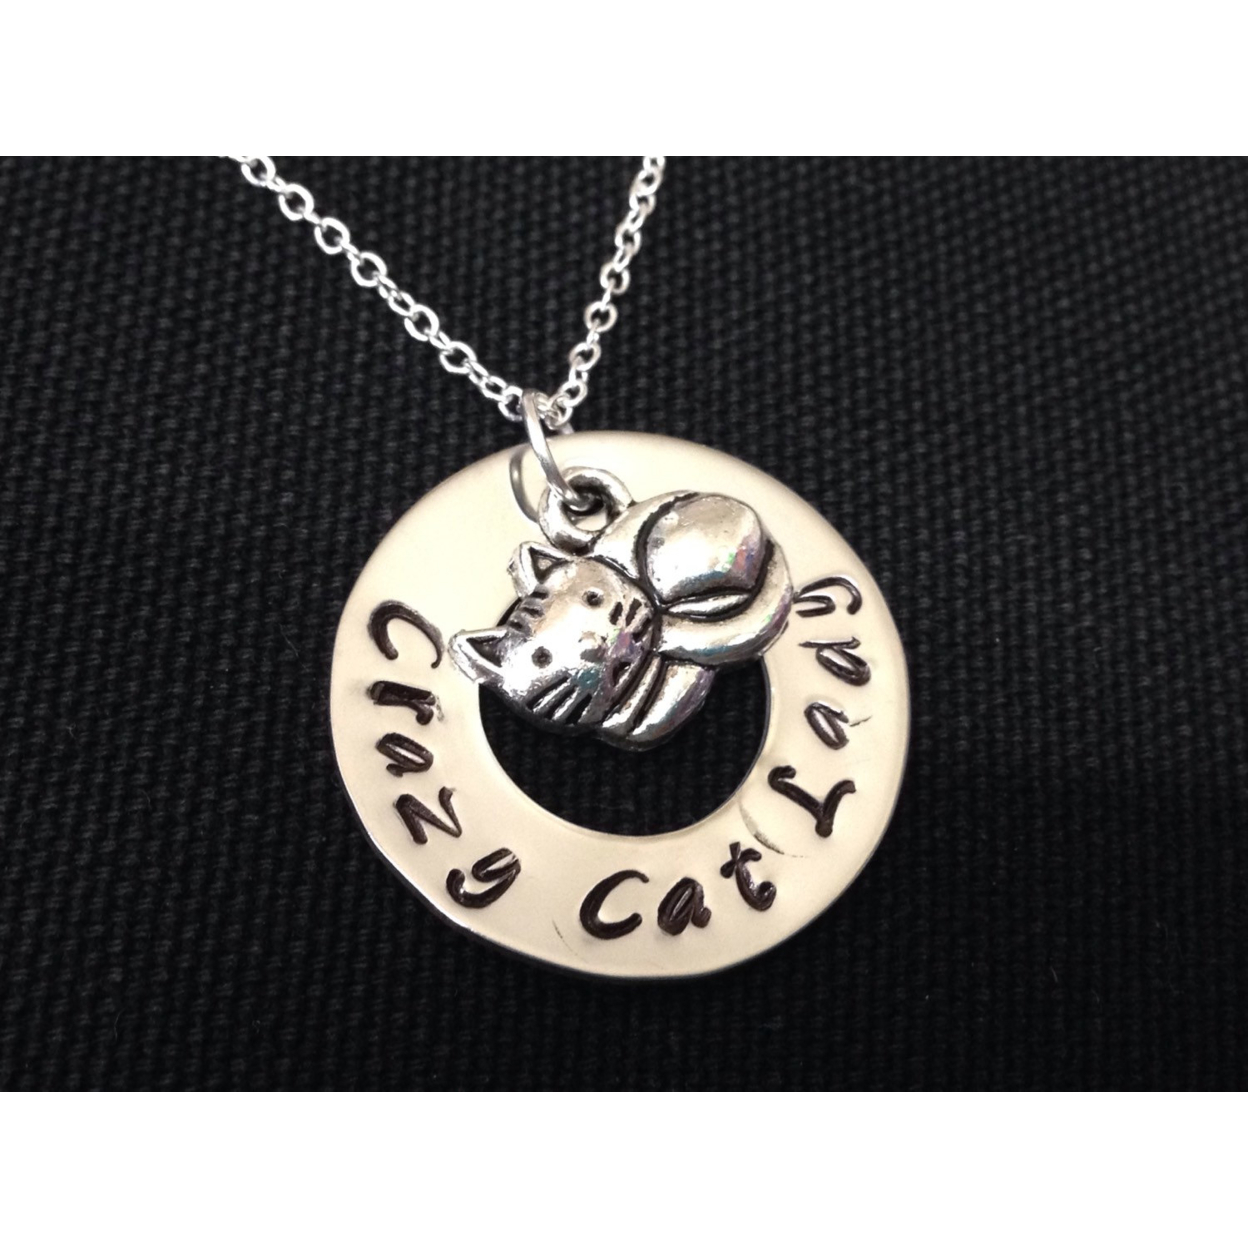 Crazy Cat Lady - Adopt Pet - Animal Rescue - Pet Adoption- Kitty Cat - Handstamped Jewelry - Birthday Gift - Love Cats 55099bb17aaaaa51268b4627